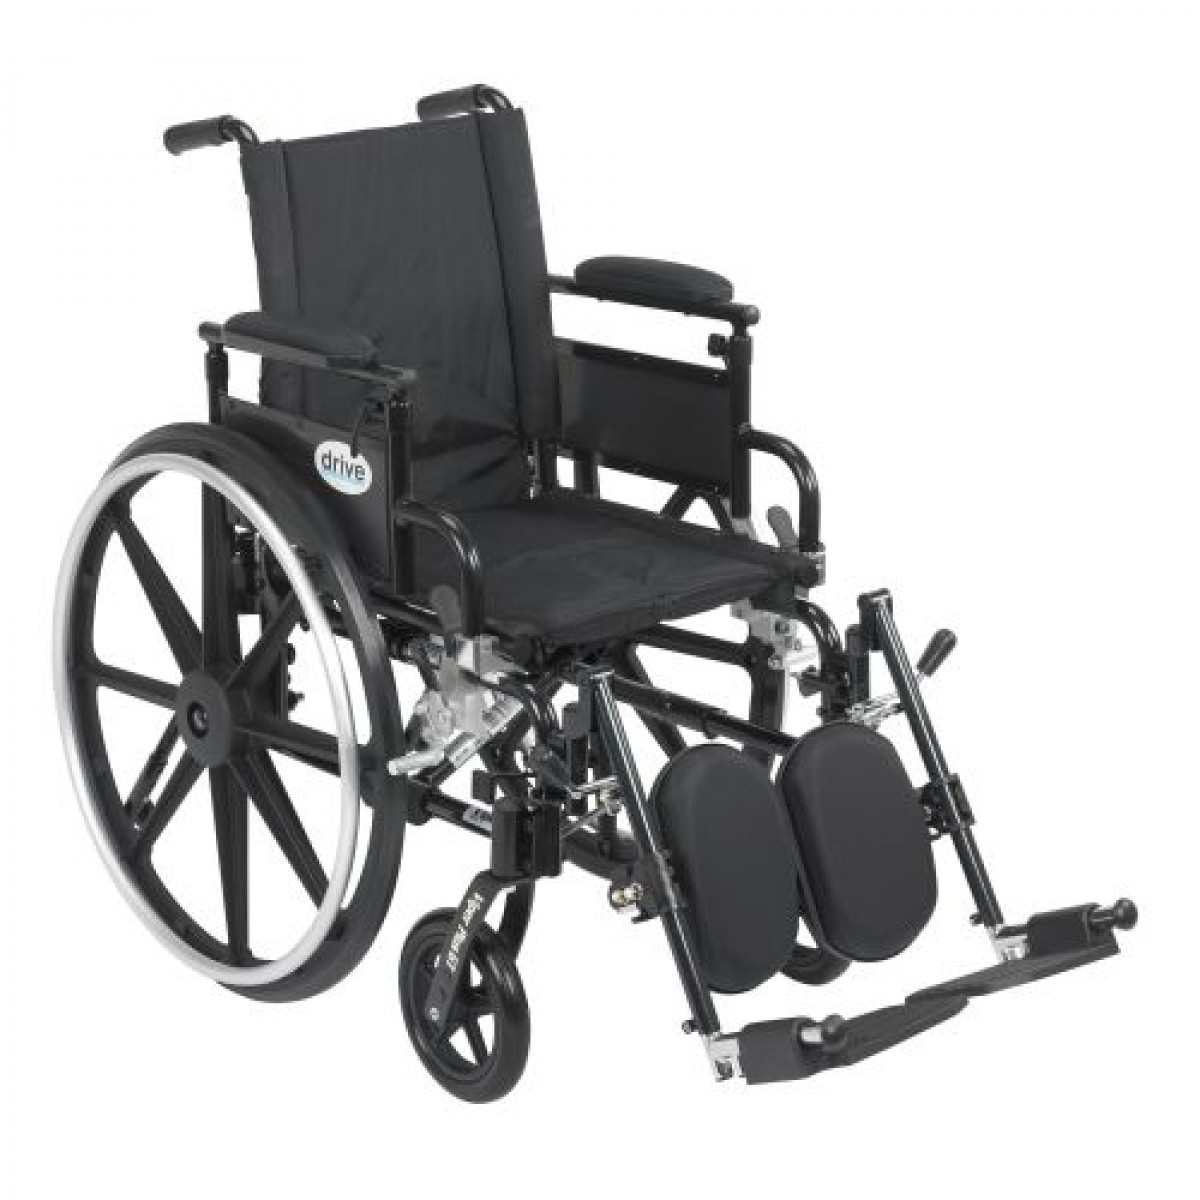 Viper Plus Gt Wheelchair With Flip Back Removable